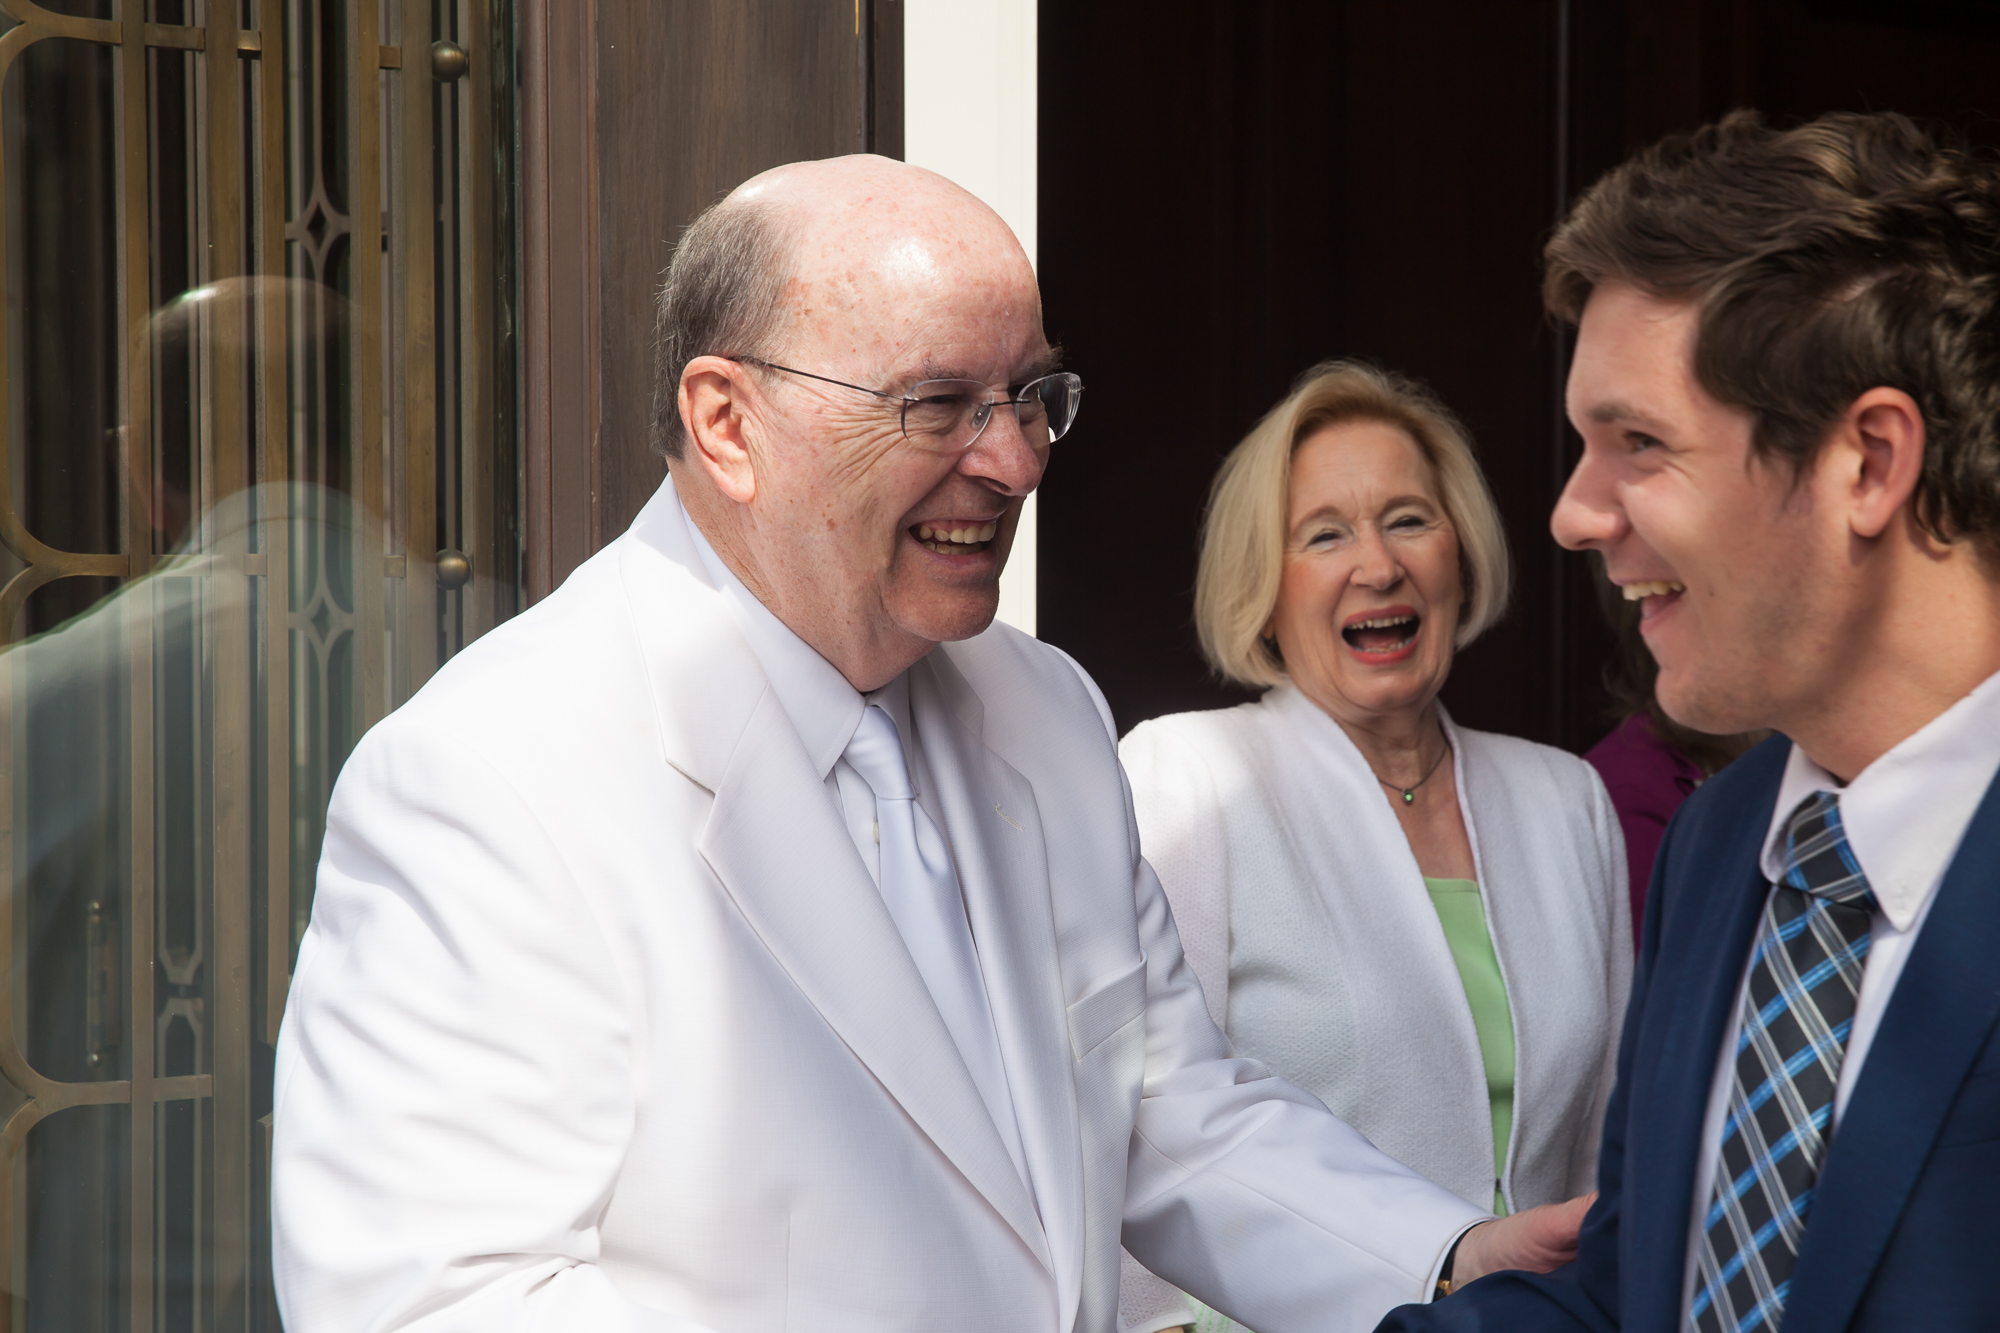 Elder Quentin L. Cook of the Quorum of the Twelve Apostles and his wife, Sister Mary Cook, shake hands with attendees of the Baton Rouge Louisiana Temple rededication as they exit the temple on Sunday, Nov. 17, 2019.